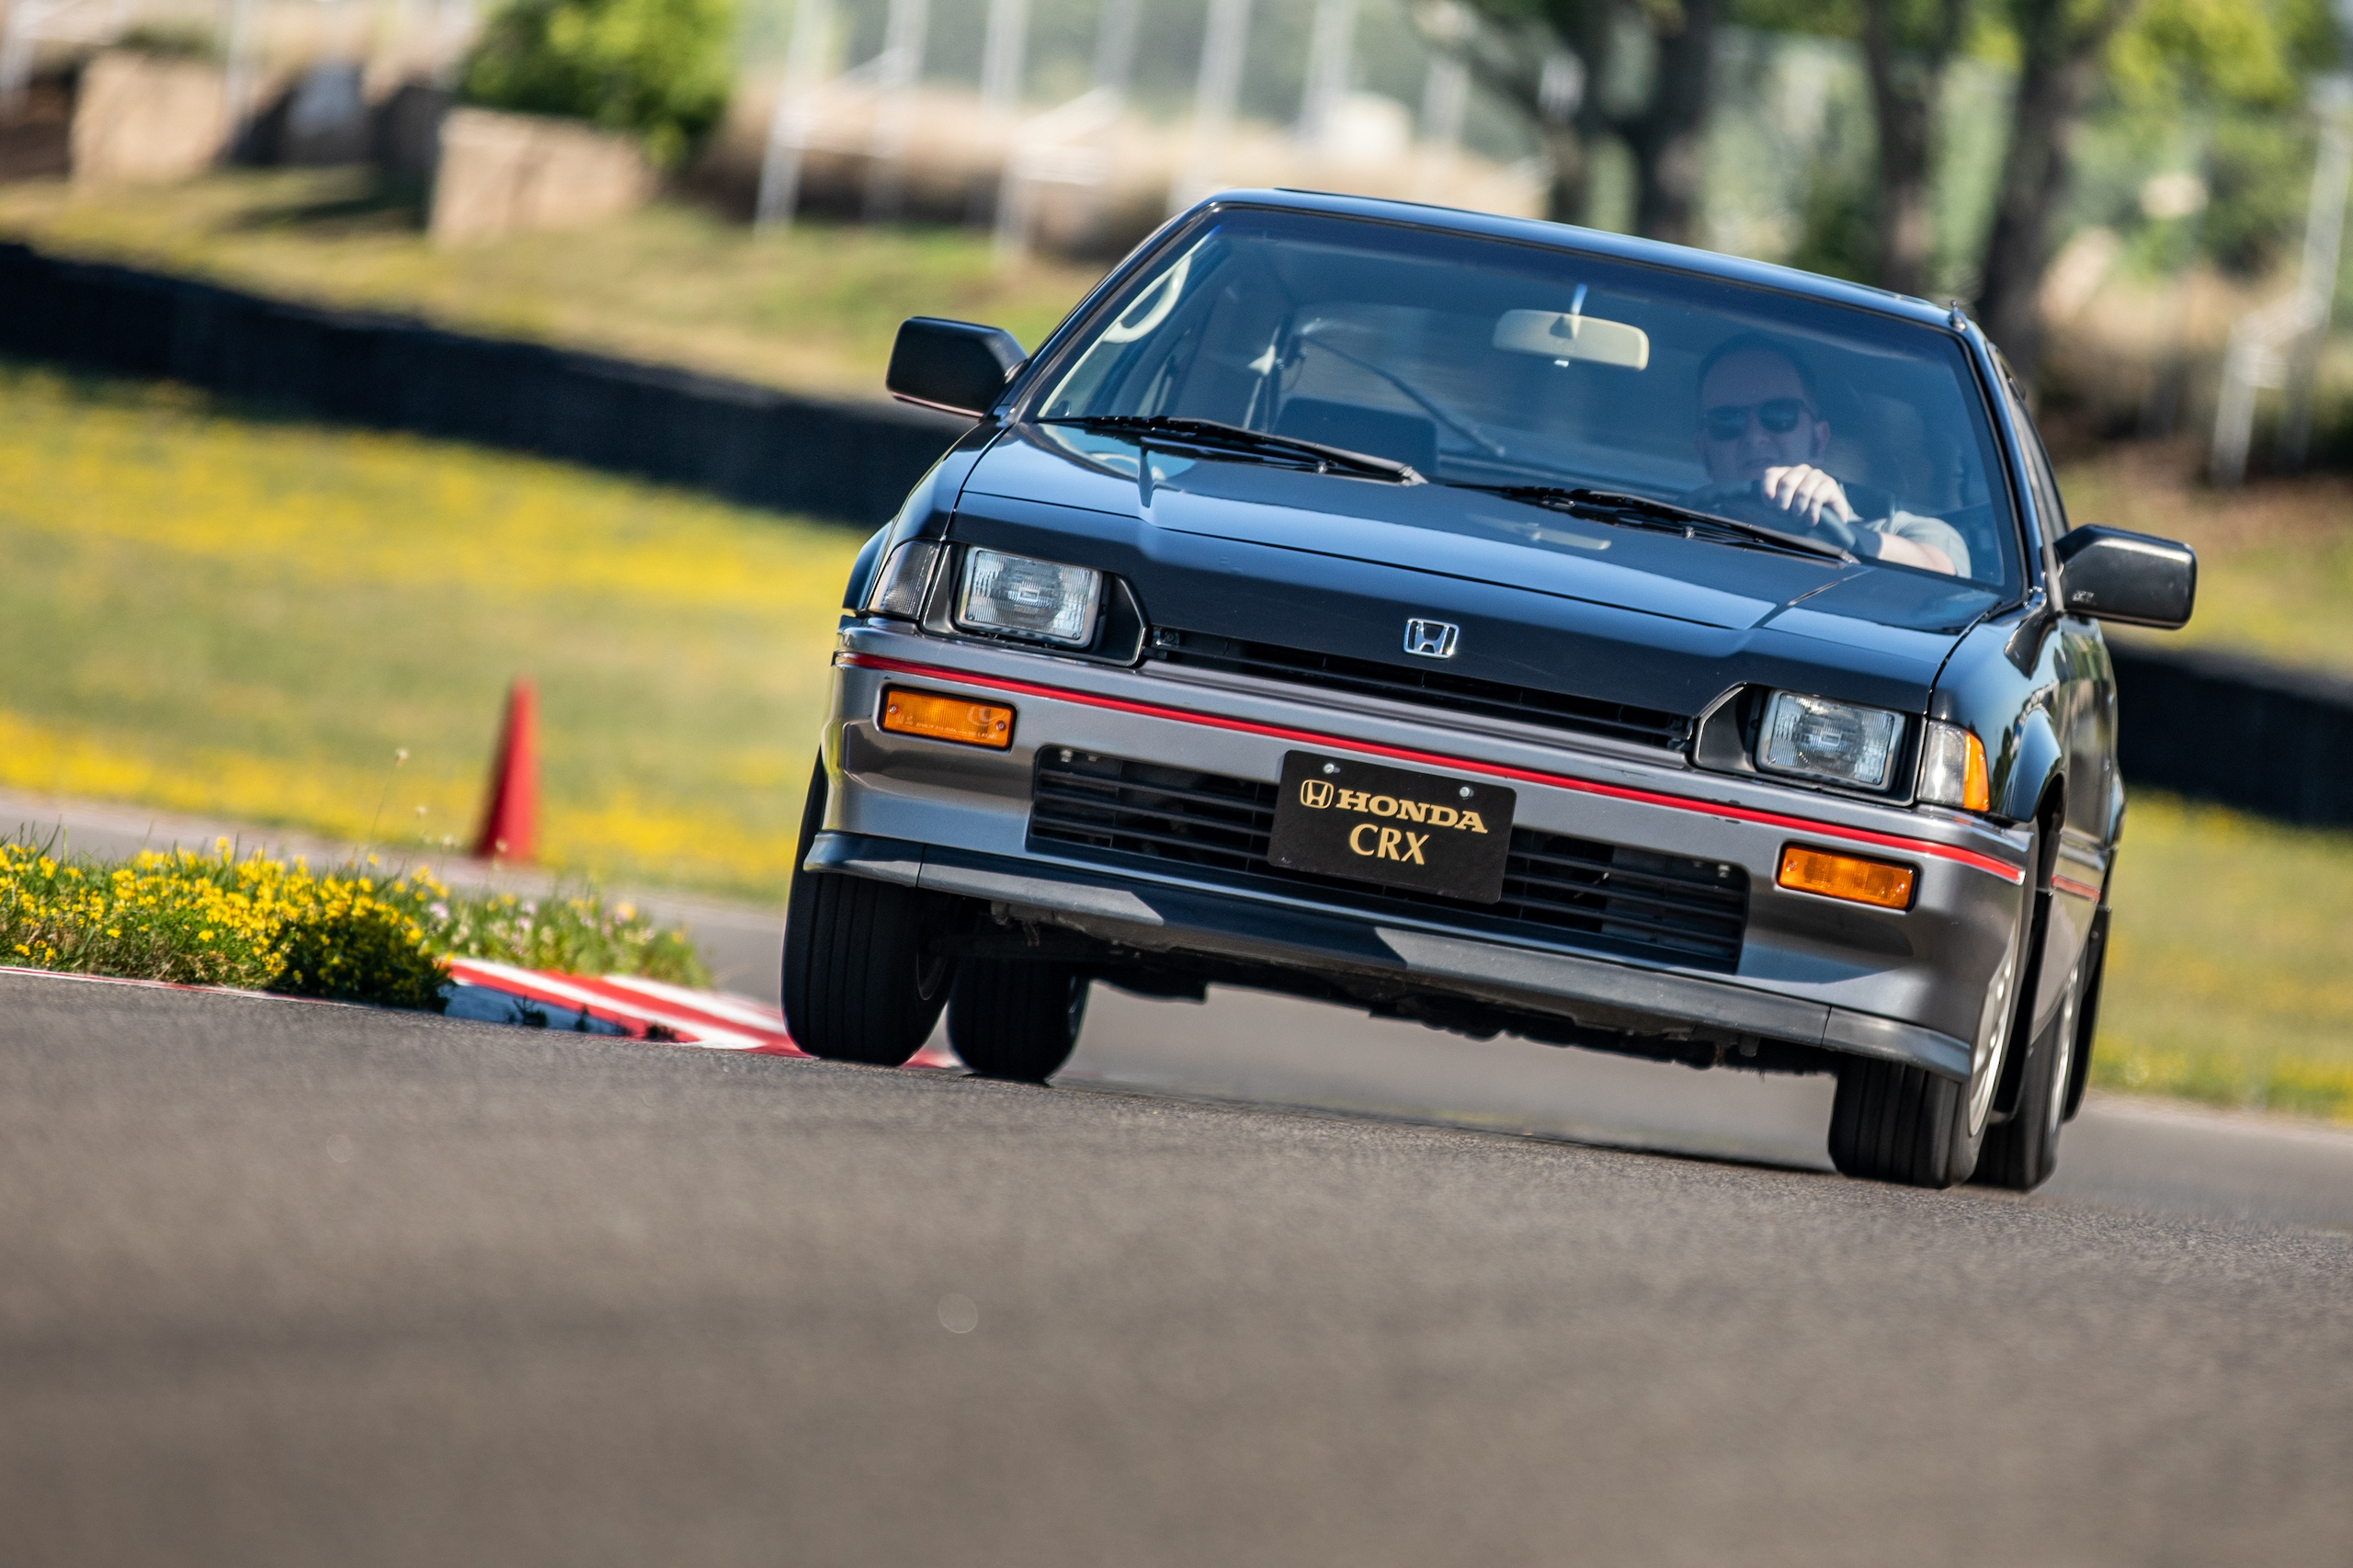 1985 CRX Si front track action